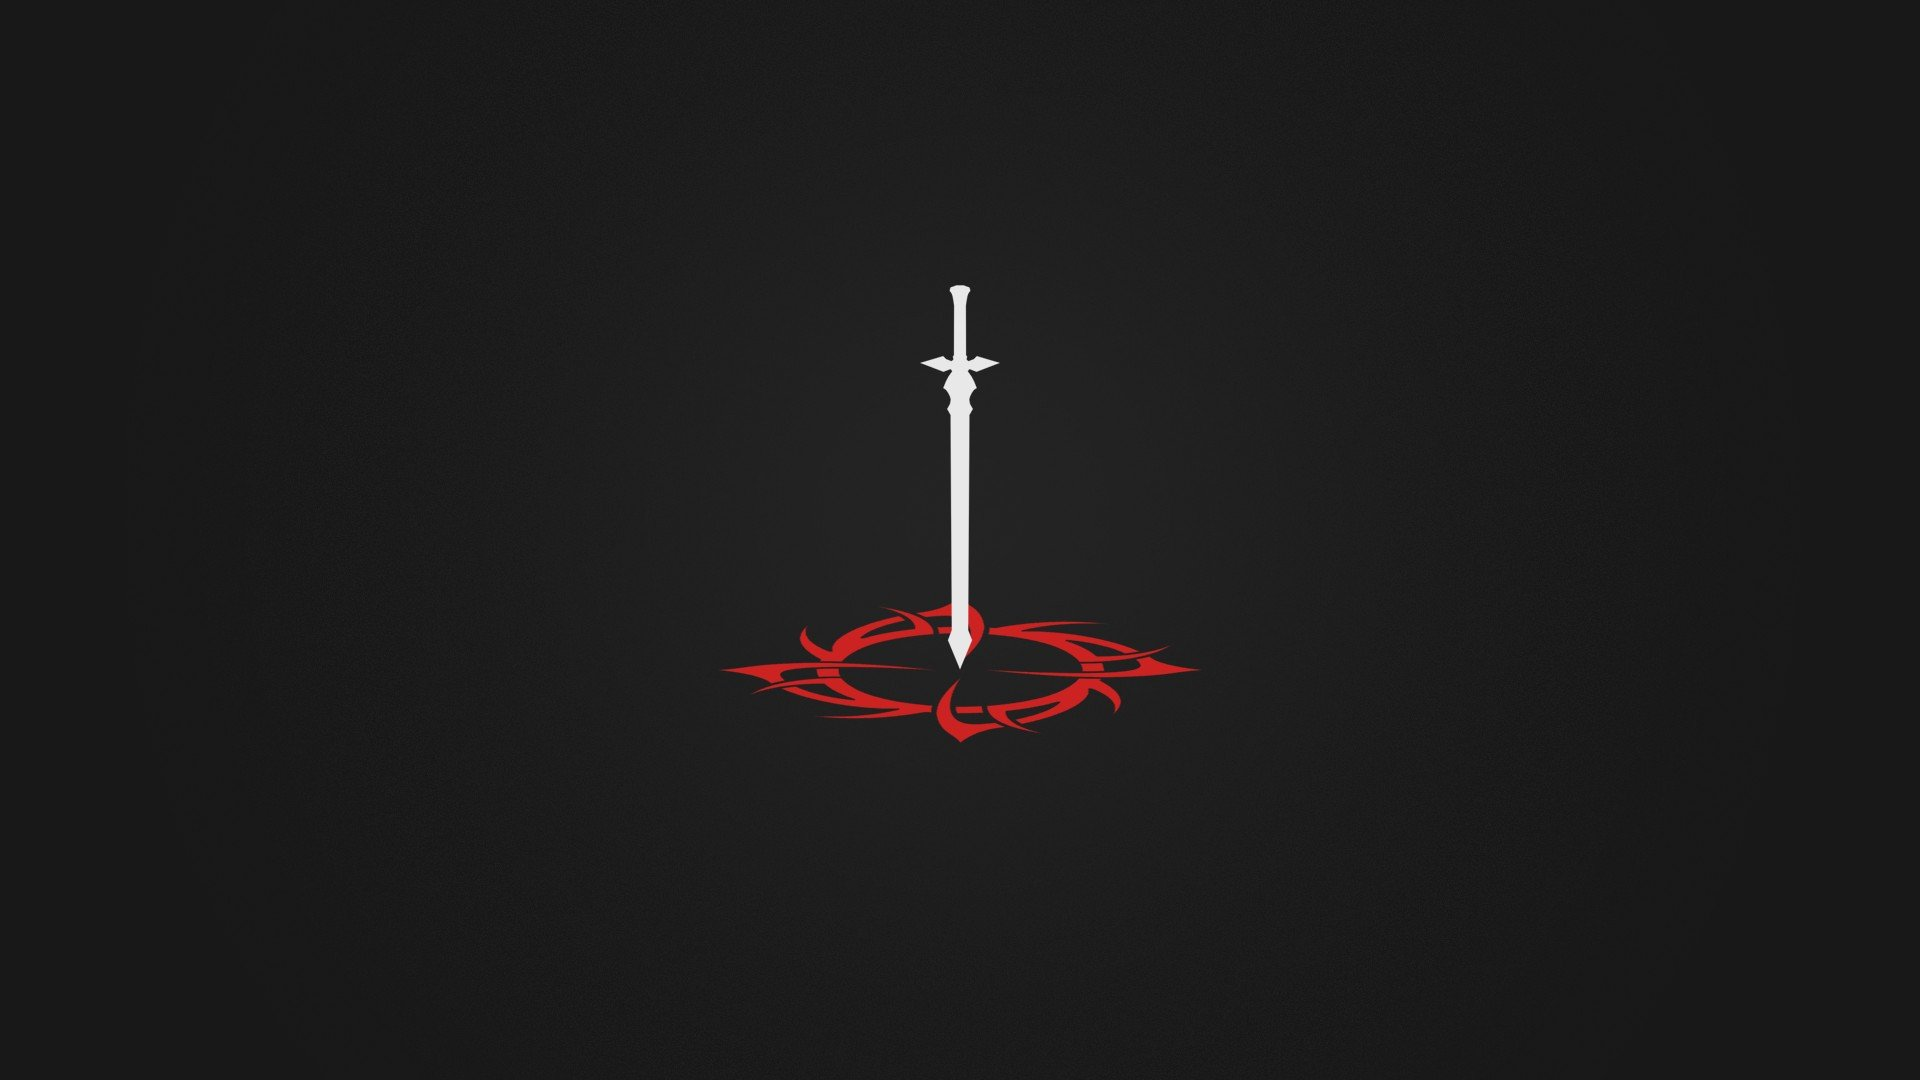 Minimalism Sword Black White Anime Hd Wallpapers Desktop And Mobile Images Photos